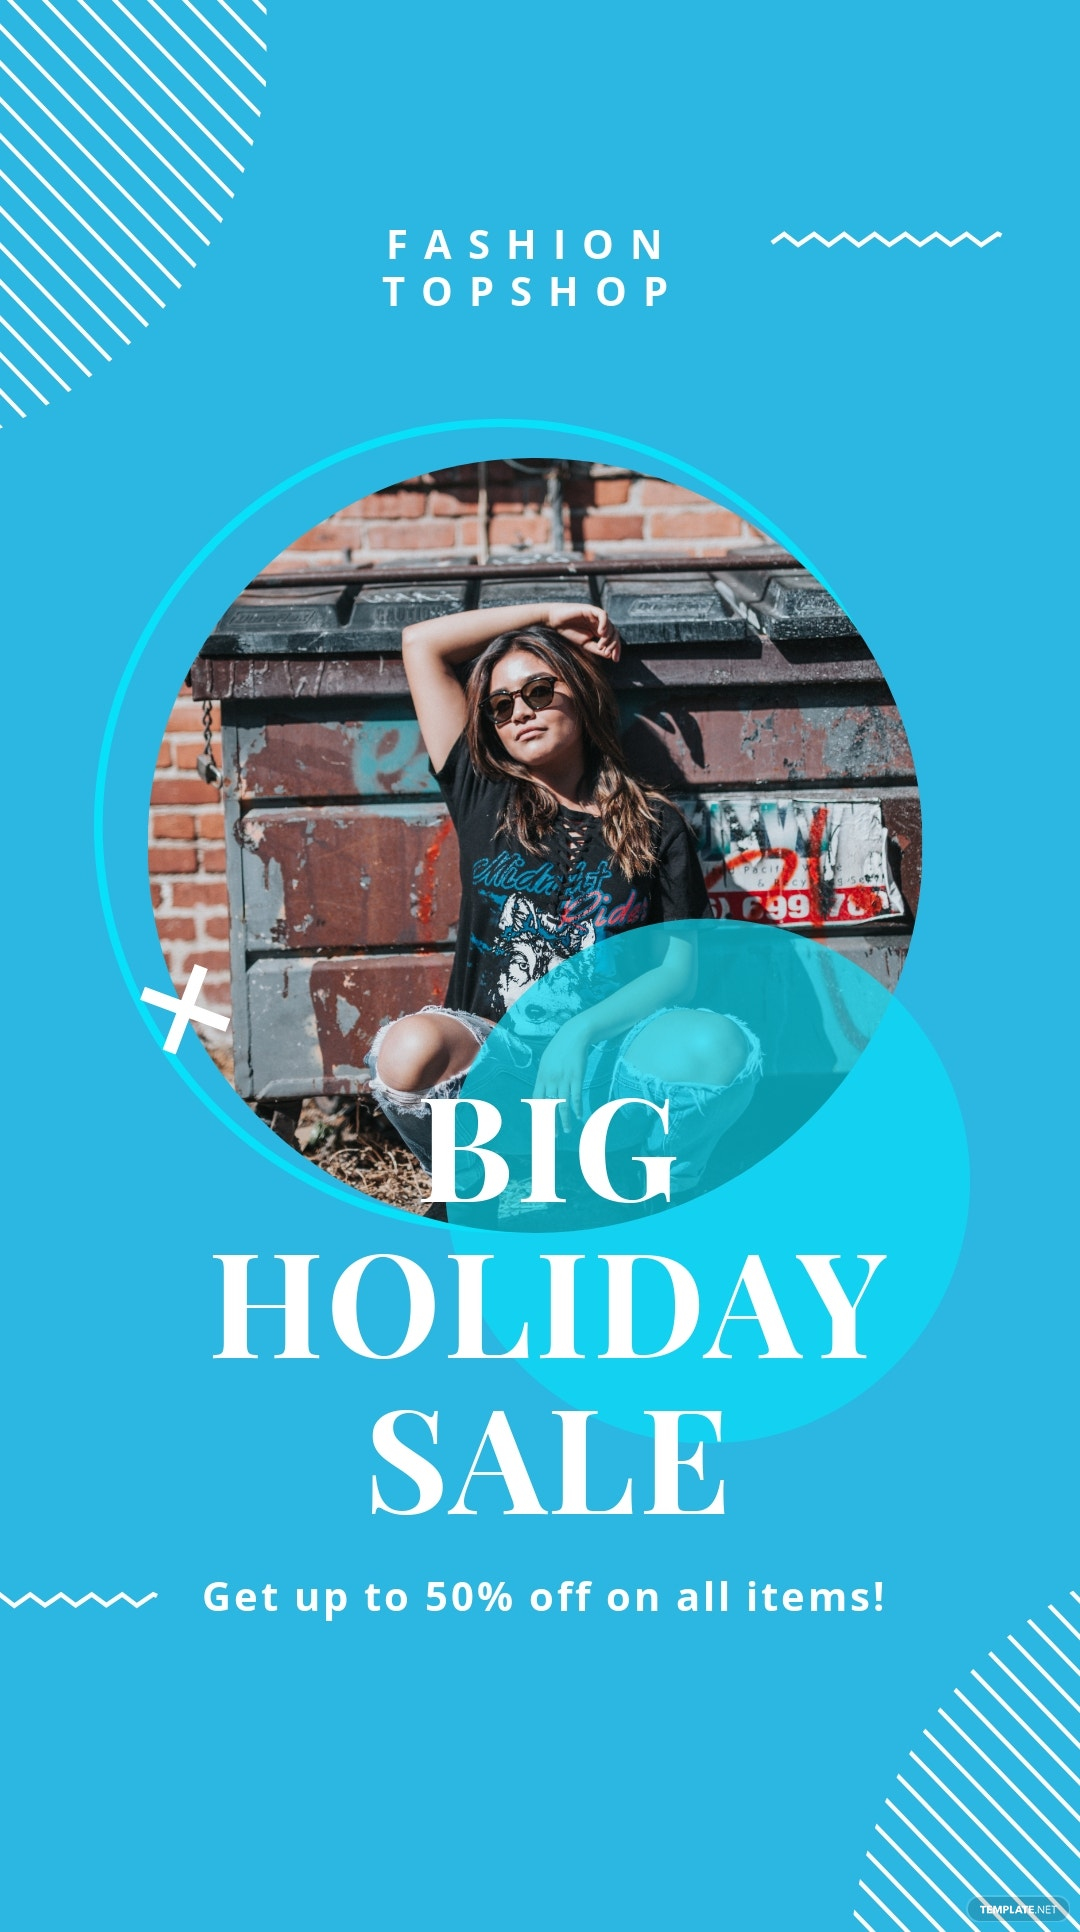 Elegant Holiday Sale Instagram Story Template